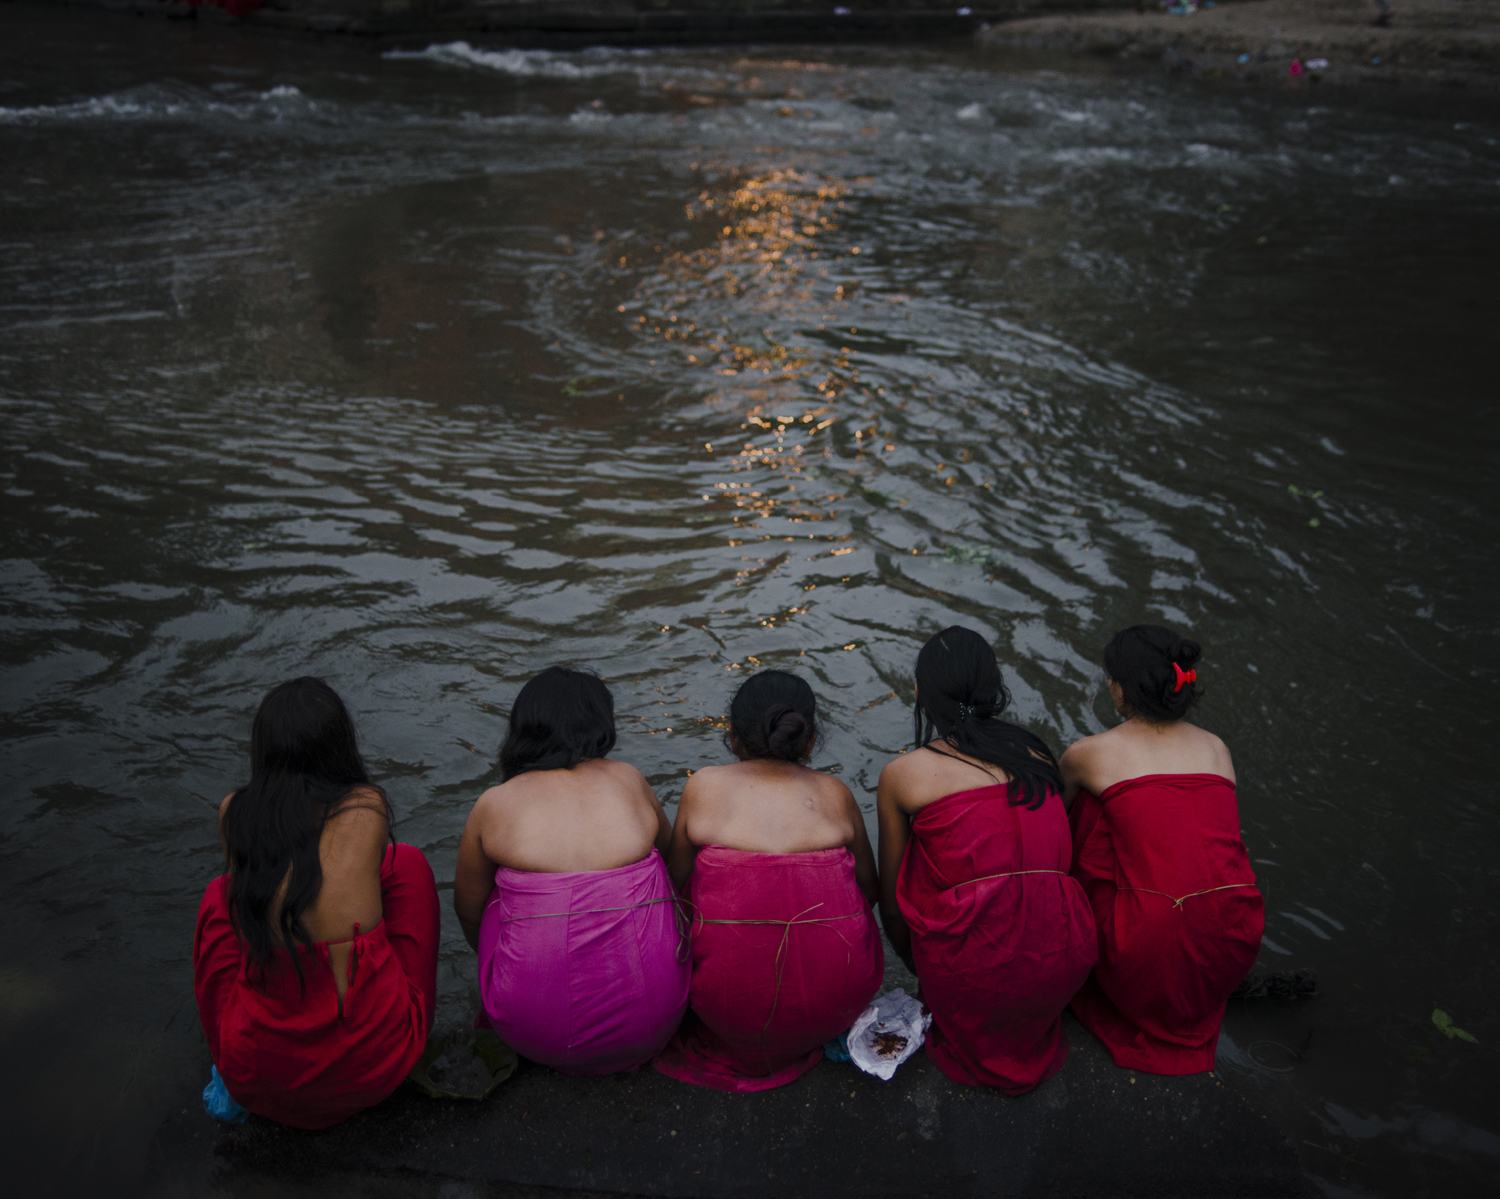 Thousands of women line up at Pashupatinath Temple waters, typically at 3 a.m., ready to atone. They feel they may have touched a man by mistake, and have to do this because their ancestors did so. Kathmandu.